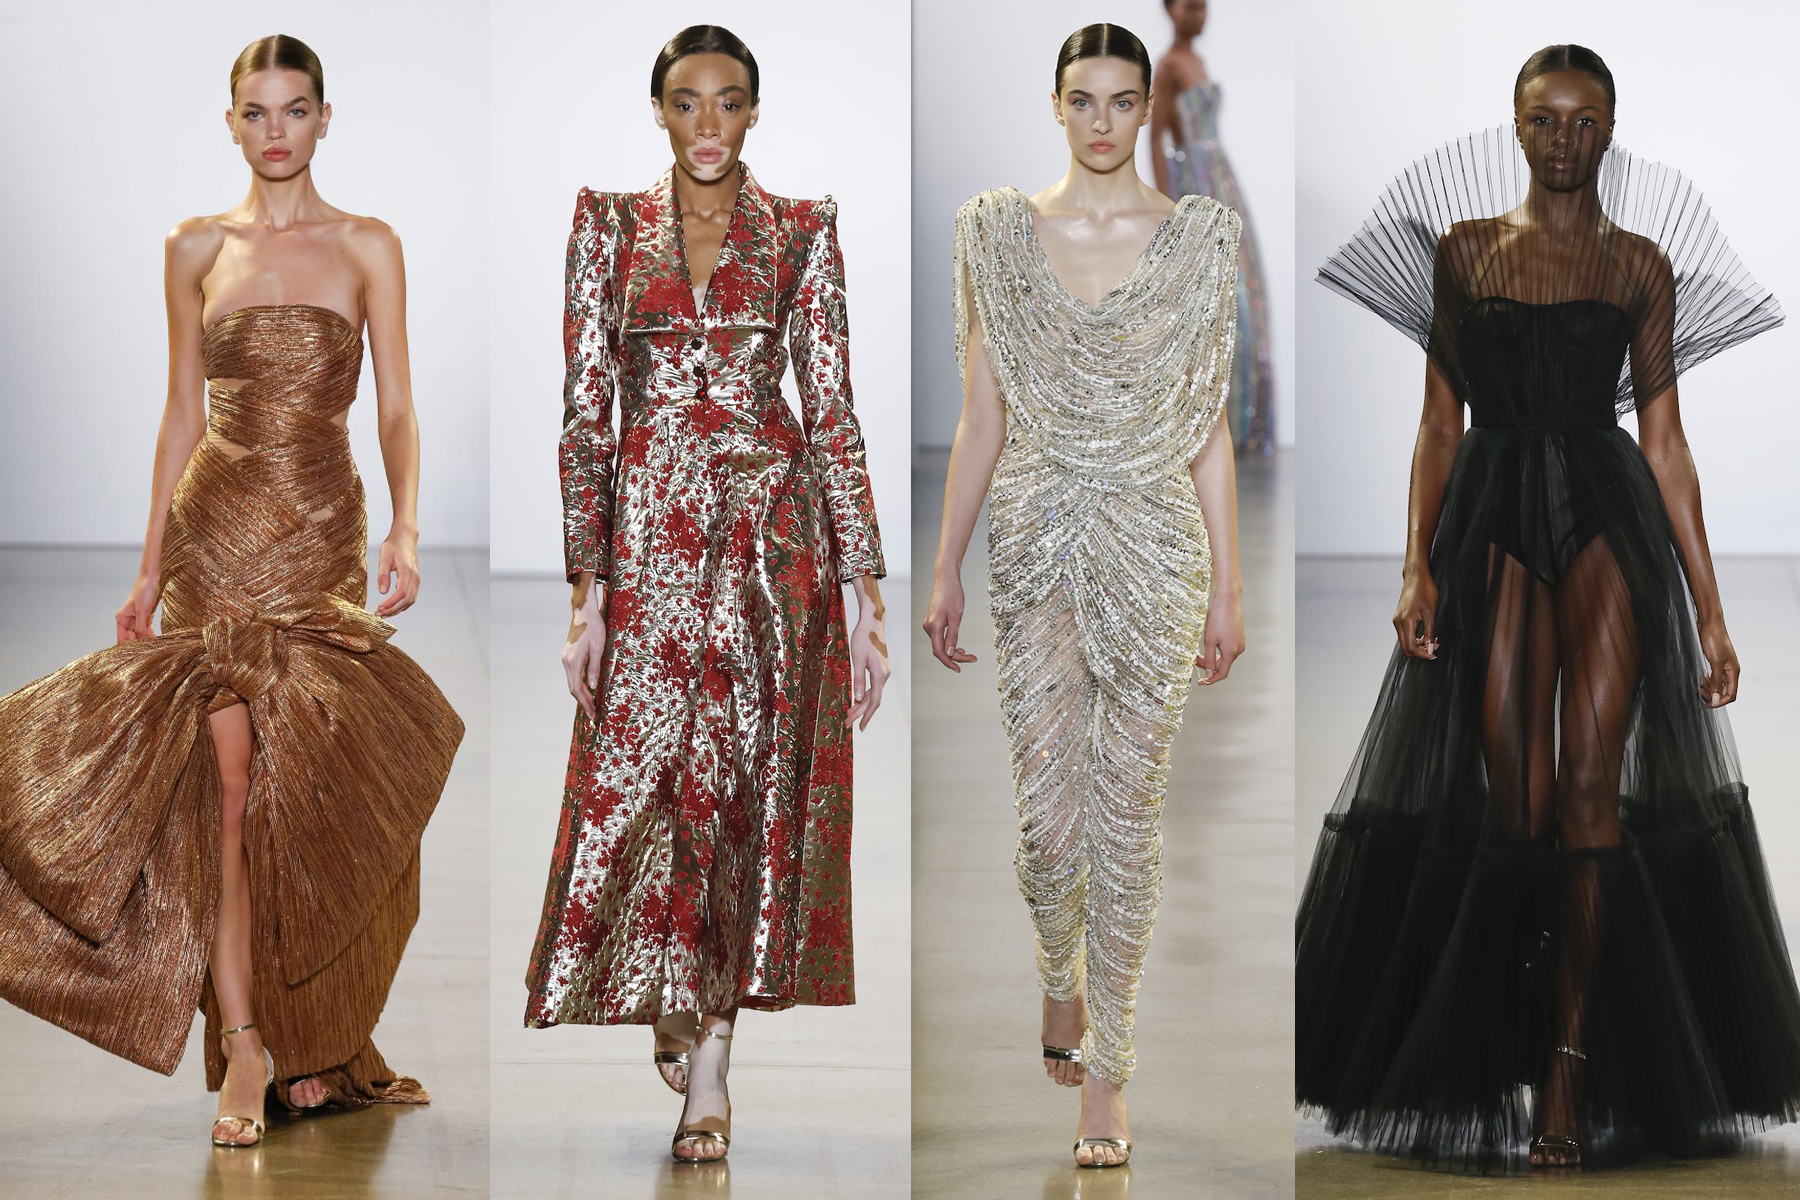 Cong Tri NYFW FW 2019 runway looks as favorited by Erin Leigh of She's Red Haute